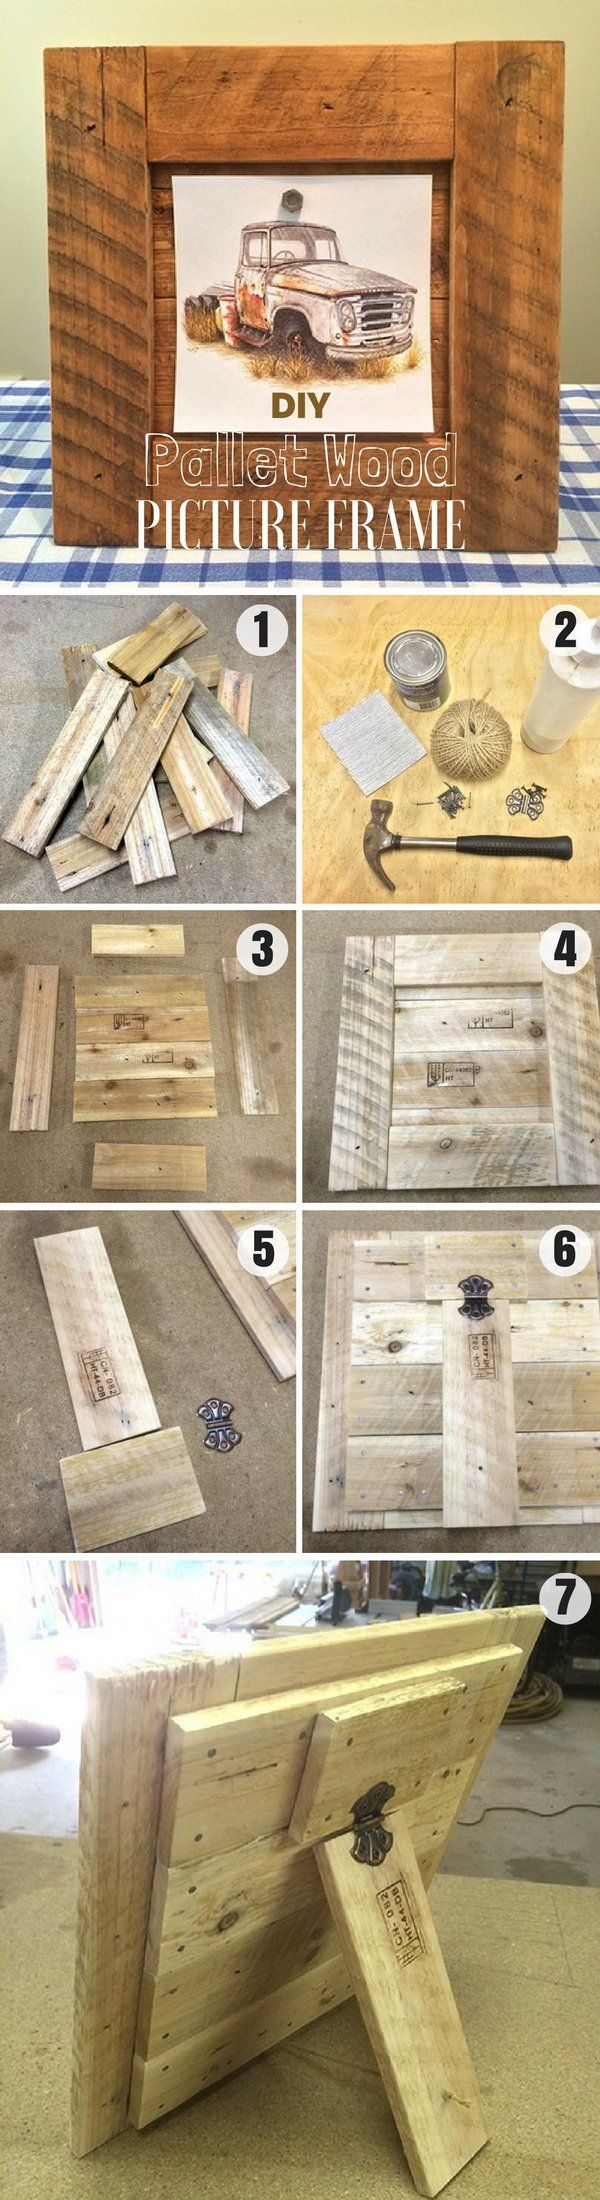 Best 20+ Make picture frames ideas on Pinterest | Shadow box ...